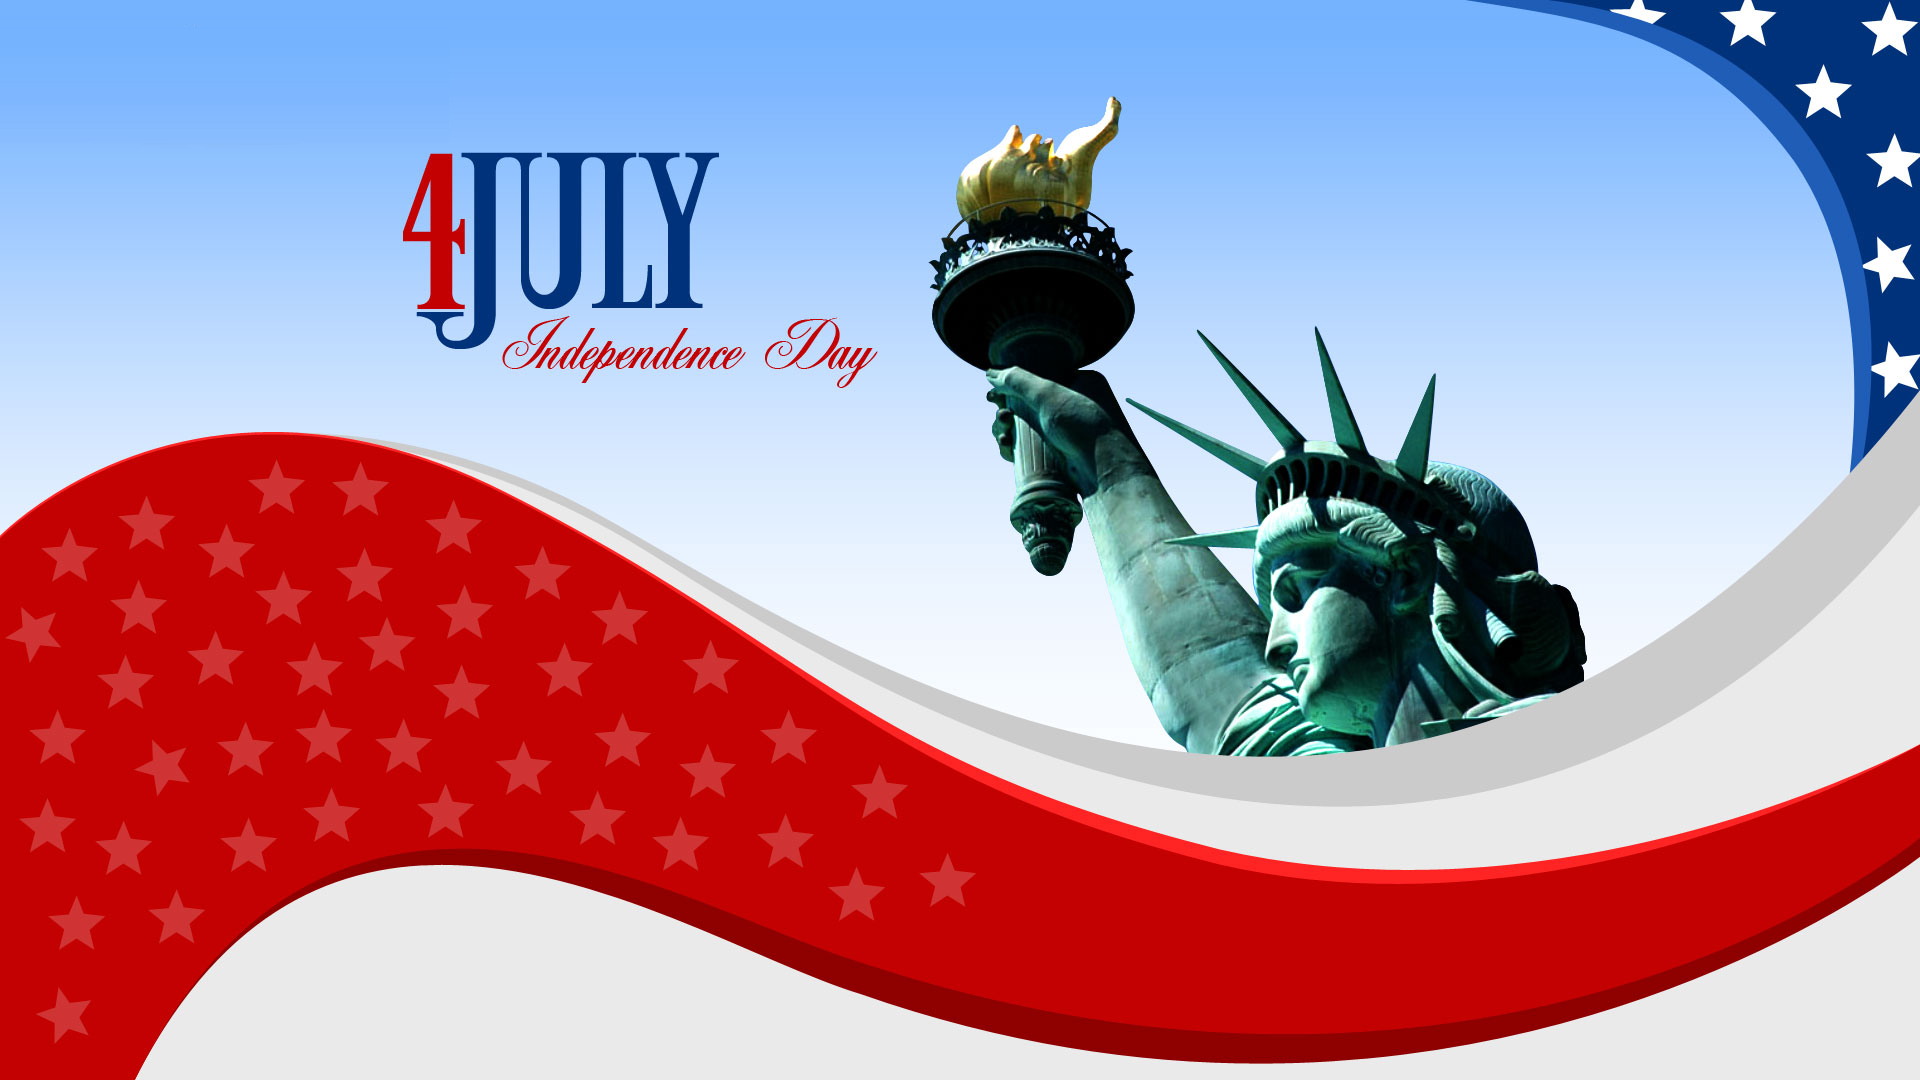 Fourth of July images Happy 4TH OF July HD wallpaper and